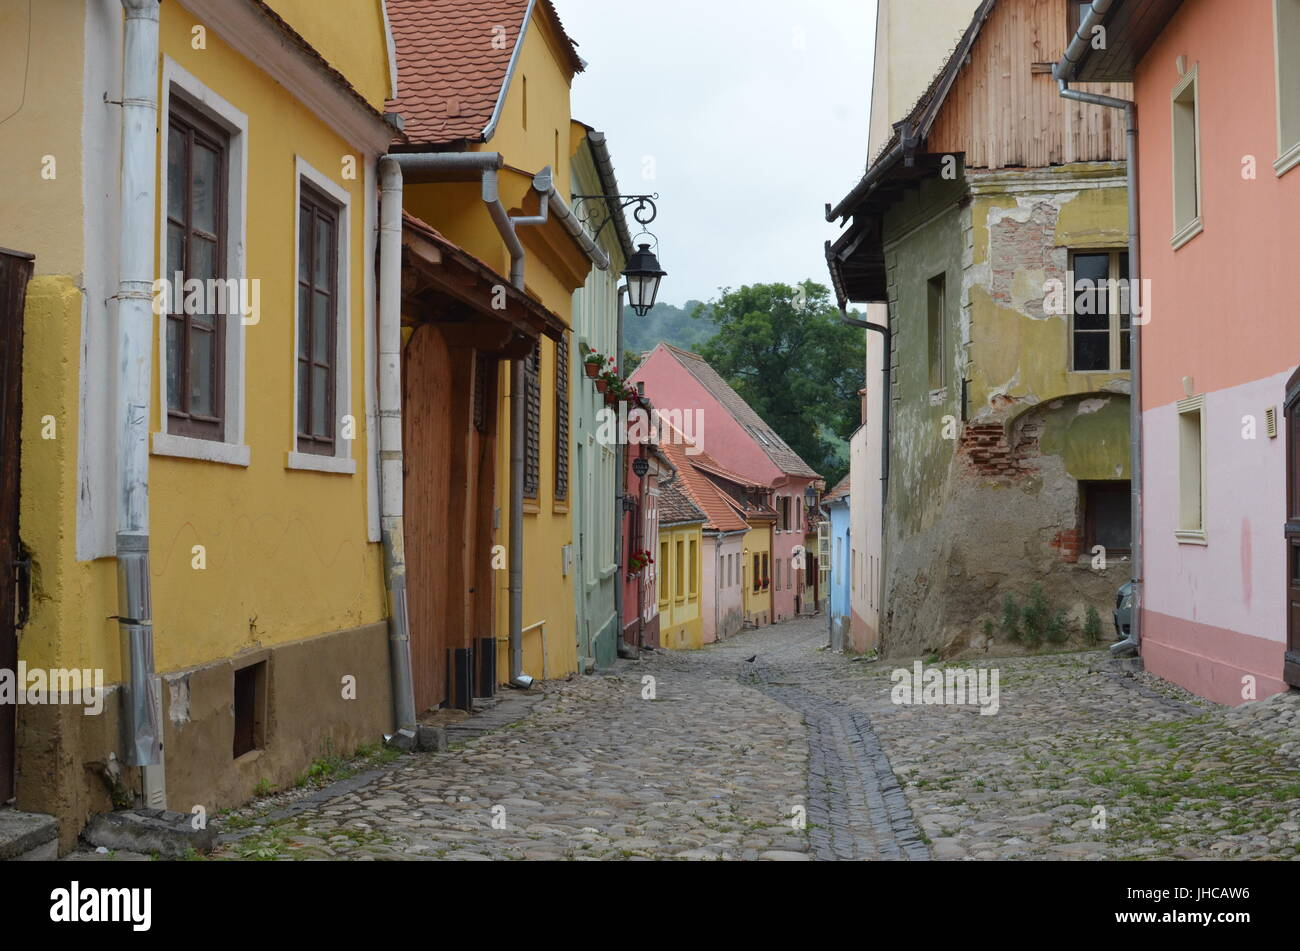 Streets of Sighisoara, Transylvania - one of the best-preserved medieval towns in Europe - Stock Image